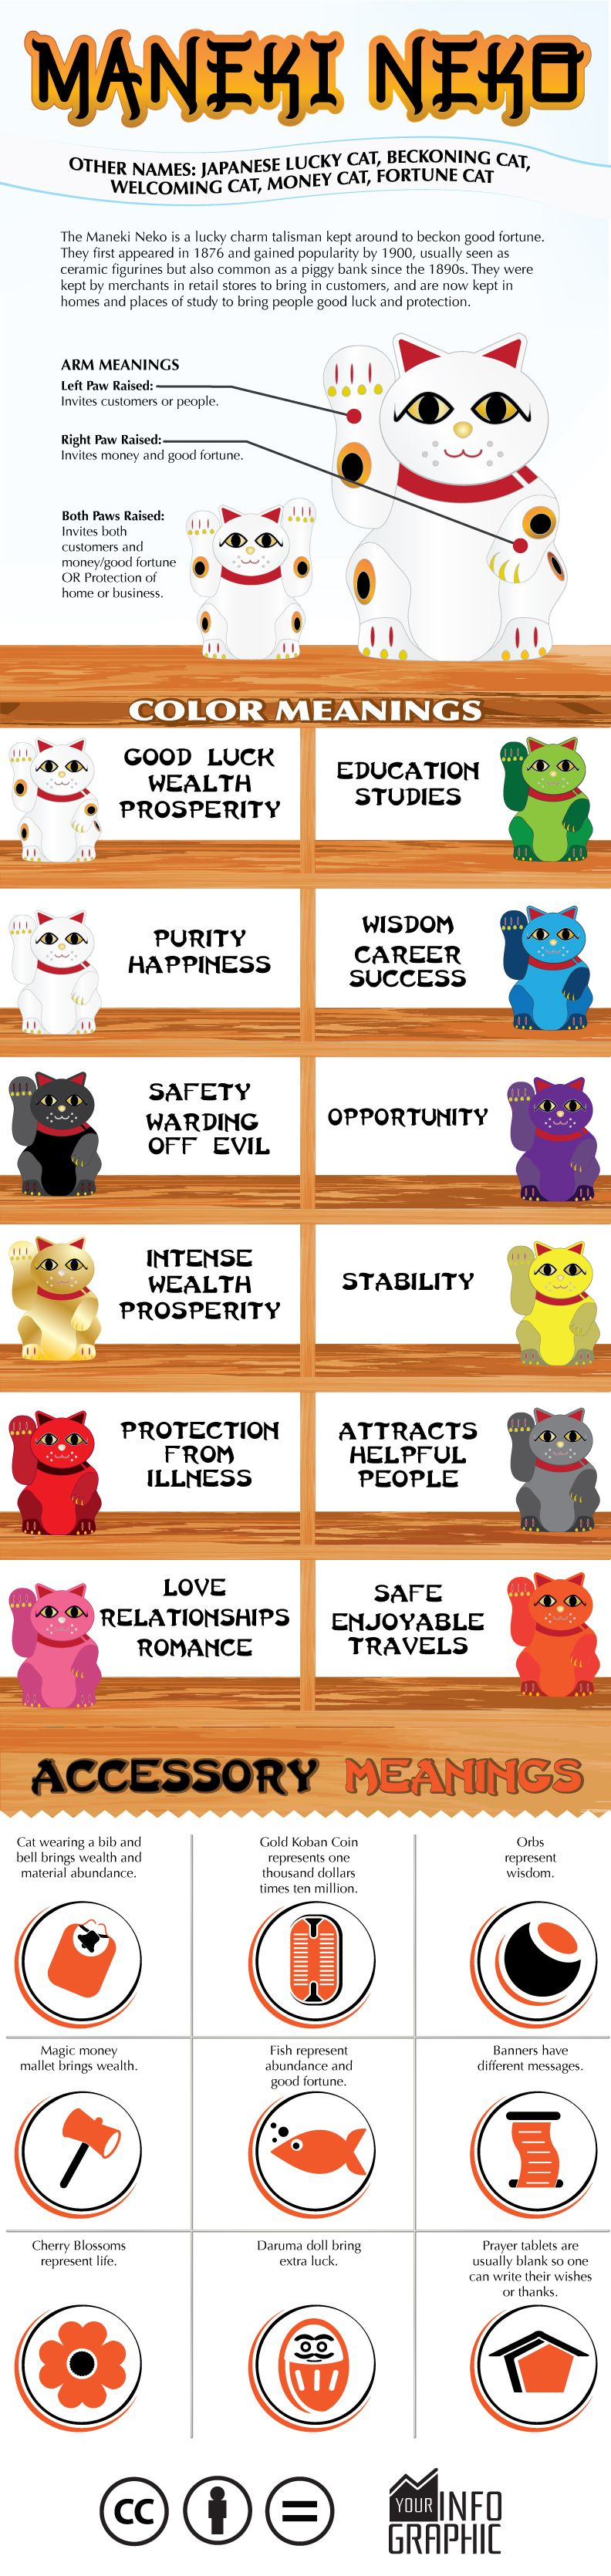 This Infographic Of Maneki Neko Lucky Cat Shows The Meanings Of